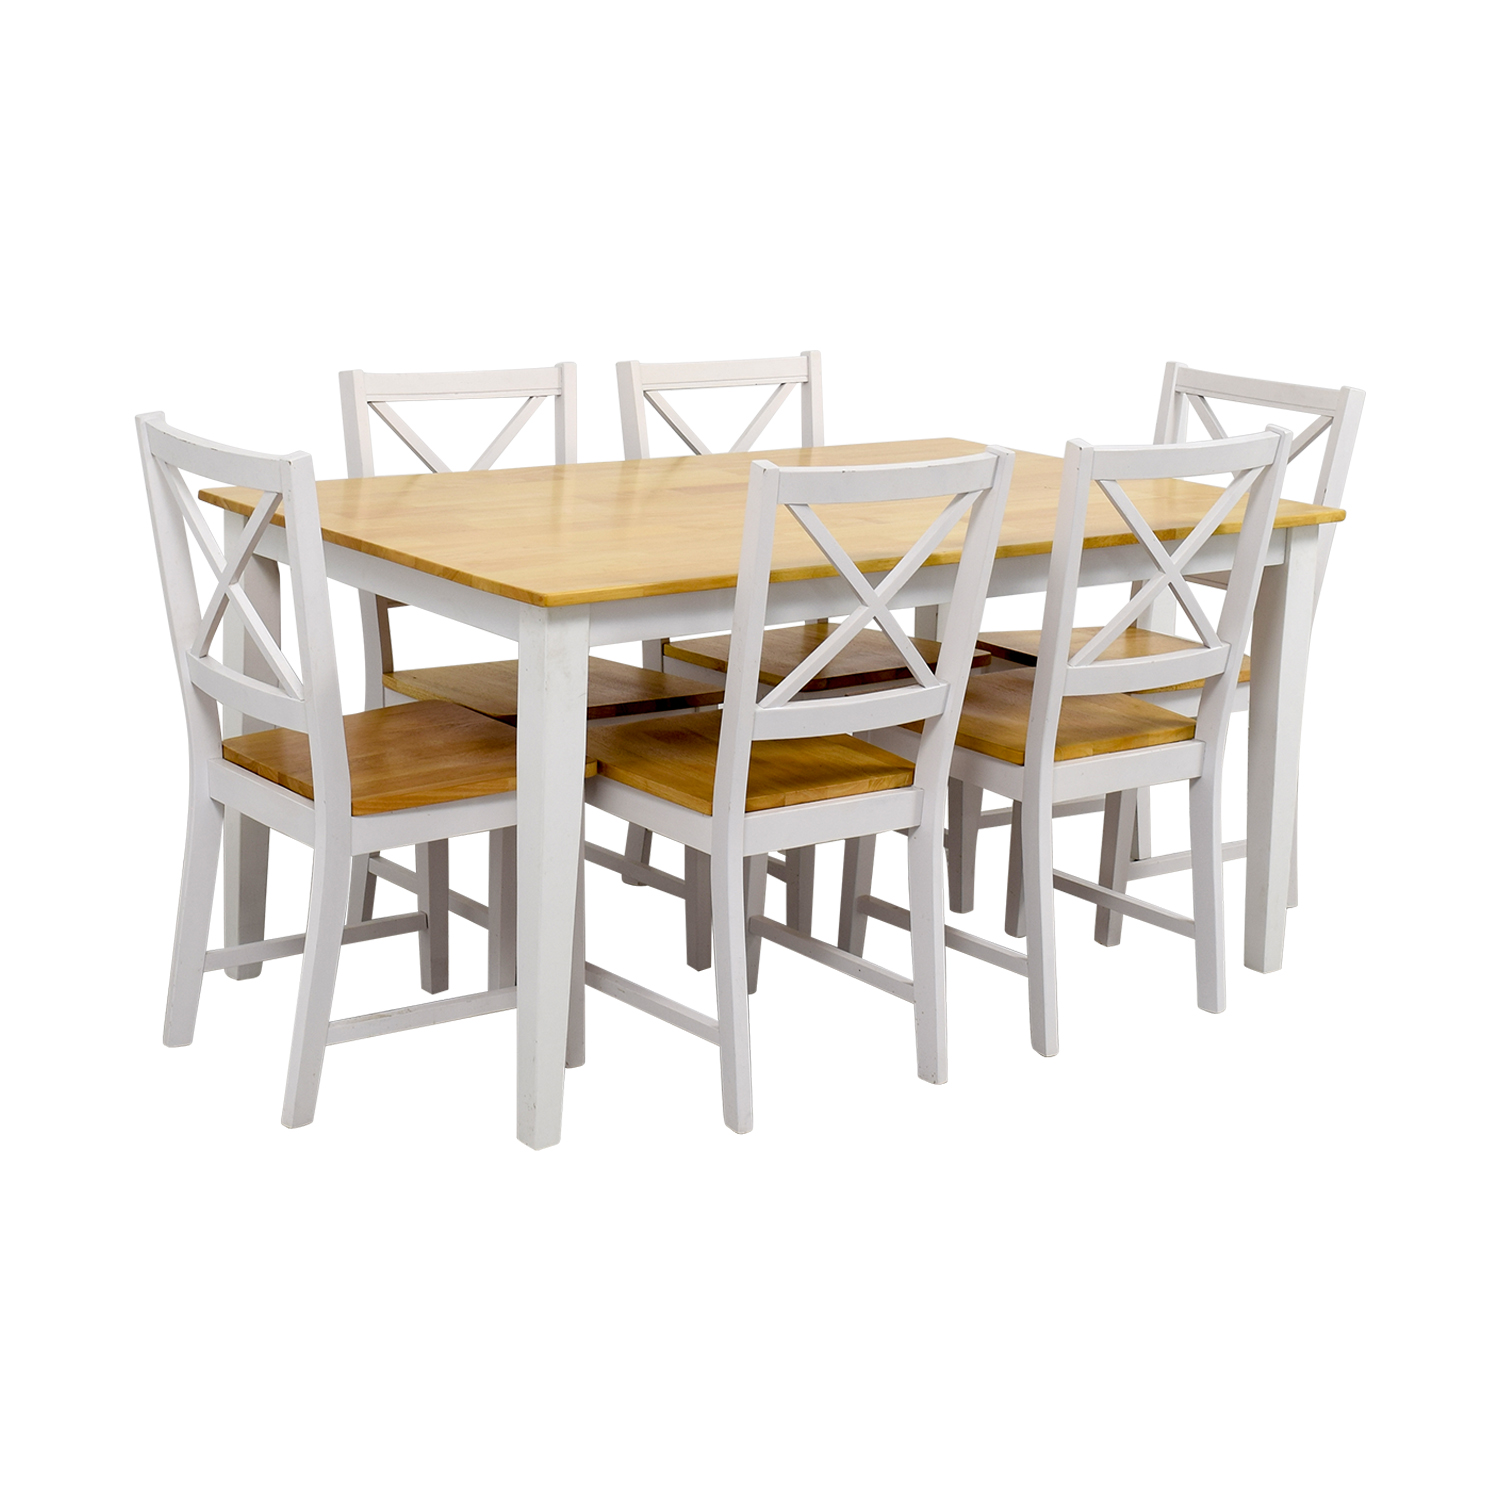 Beech Wood and White Dining Set nj